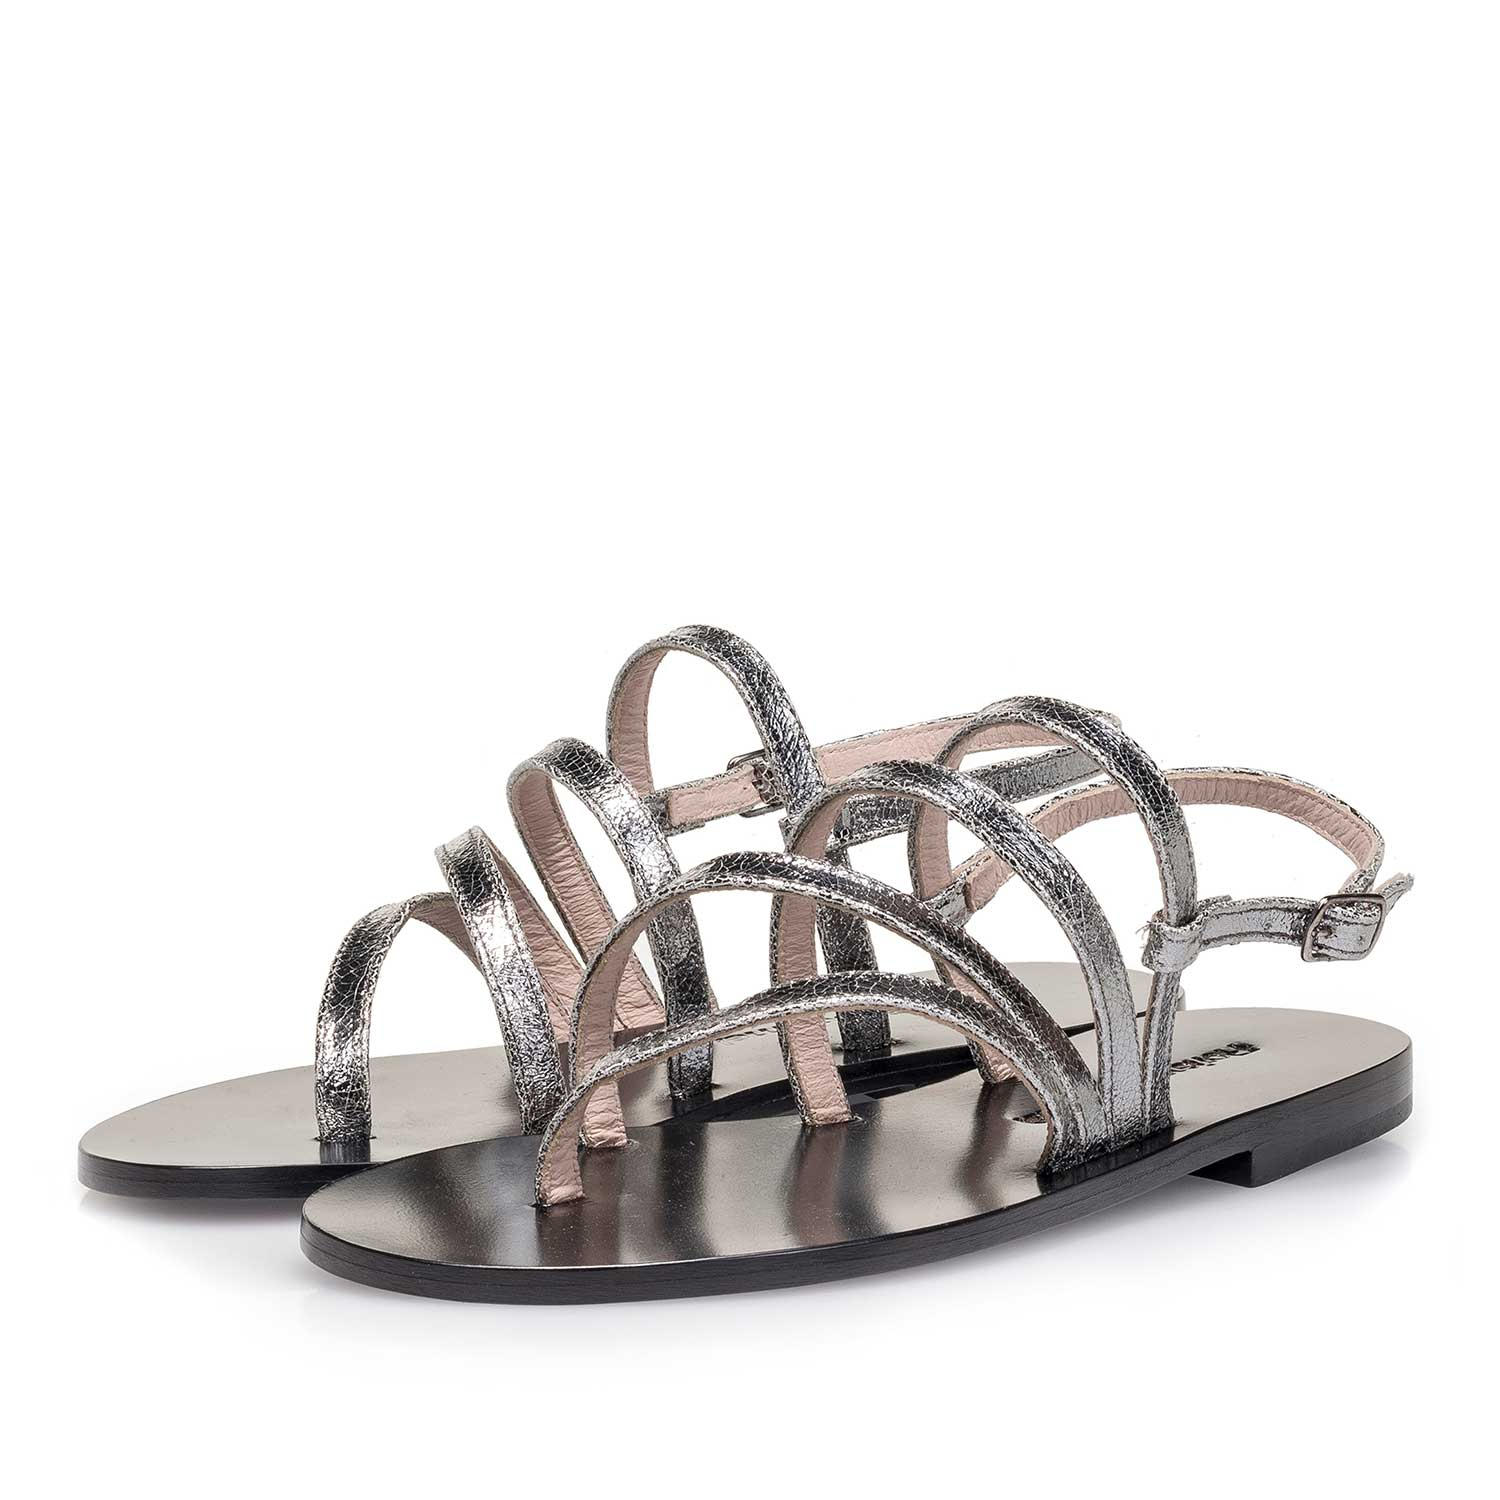 85905/01 - Silver metallic leather sandal with craquelé effect